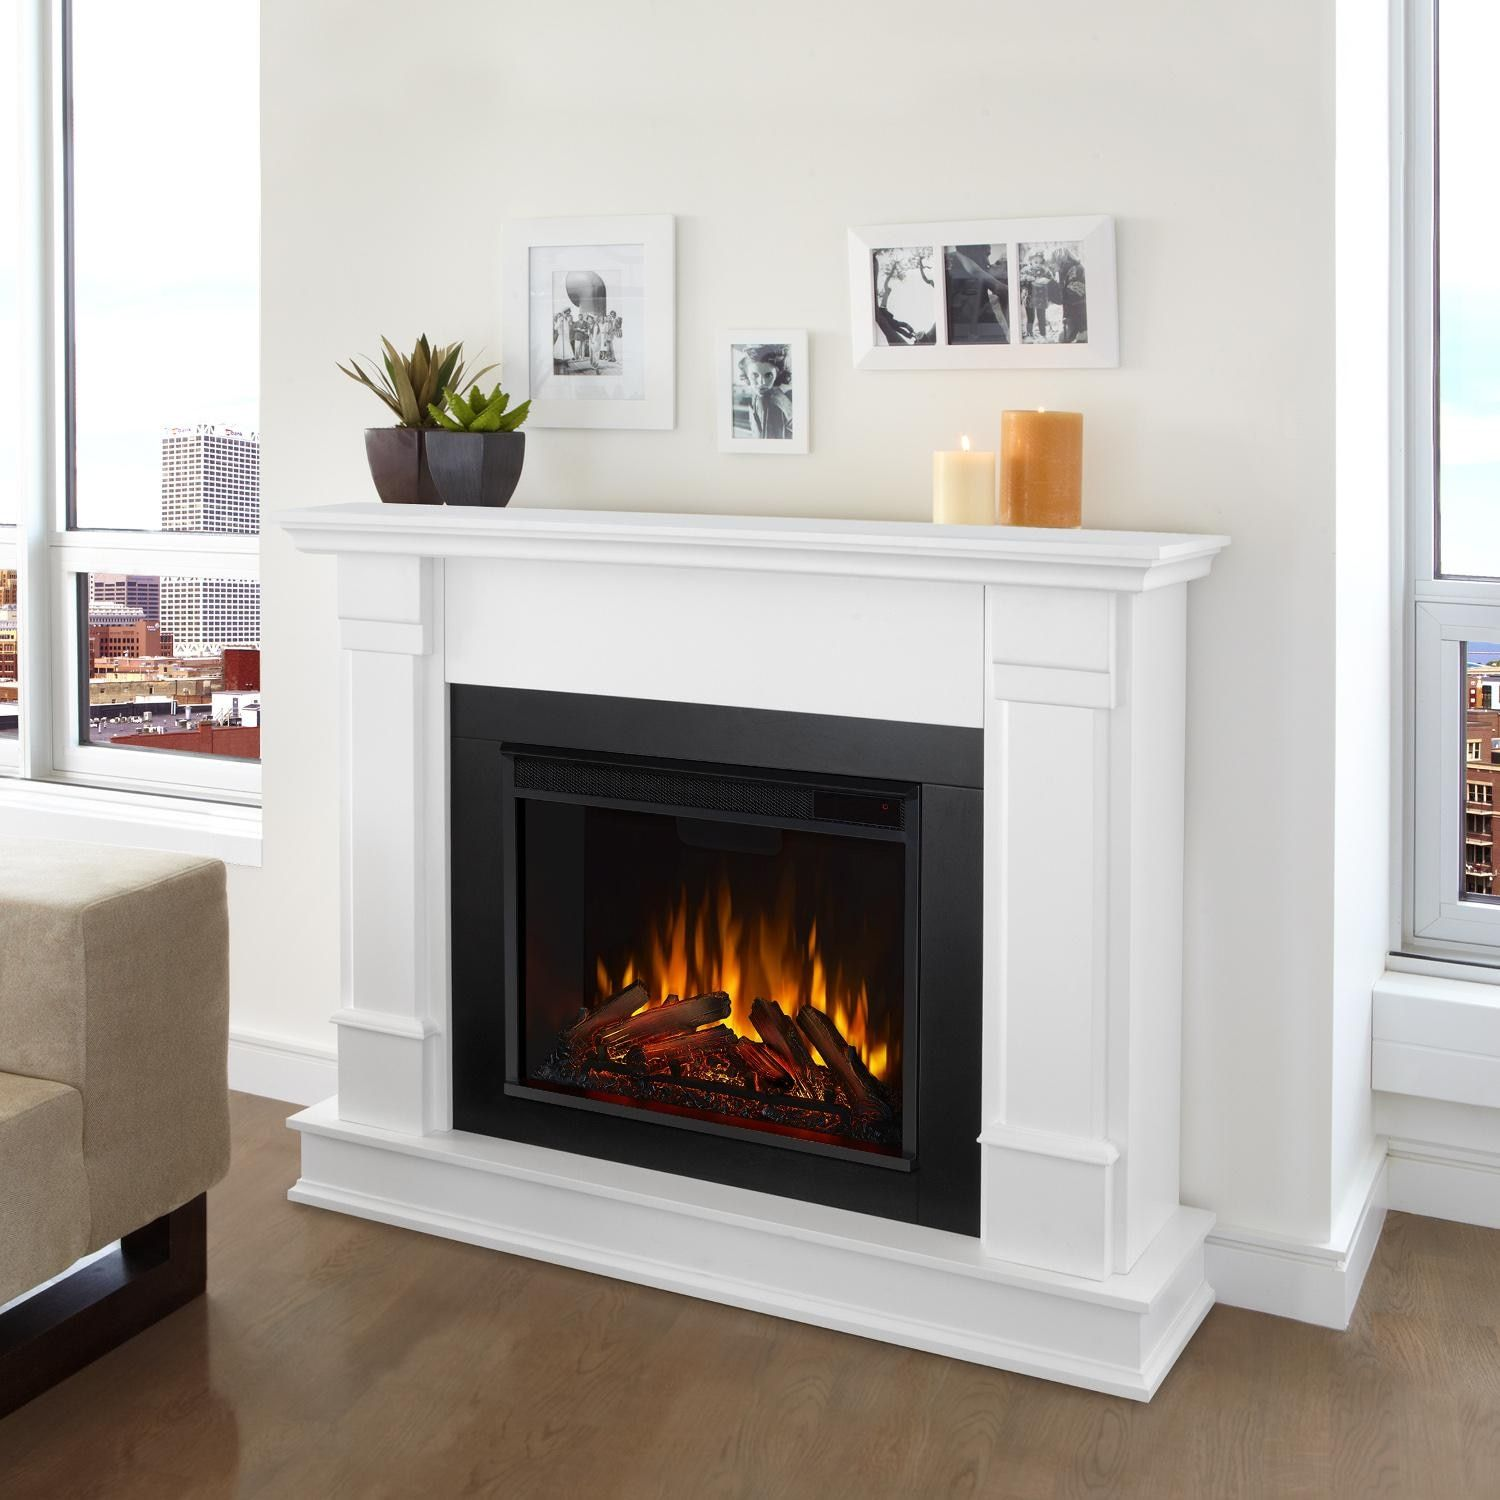 Real Flame G8600e W Silverton 48 Inch Electric Fireplace With Mantel White Bbqguys In 2020 White Electric Fireplace Electric Fireplace Electric Fireplace With Mantel